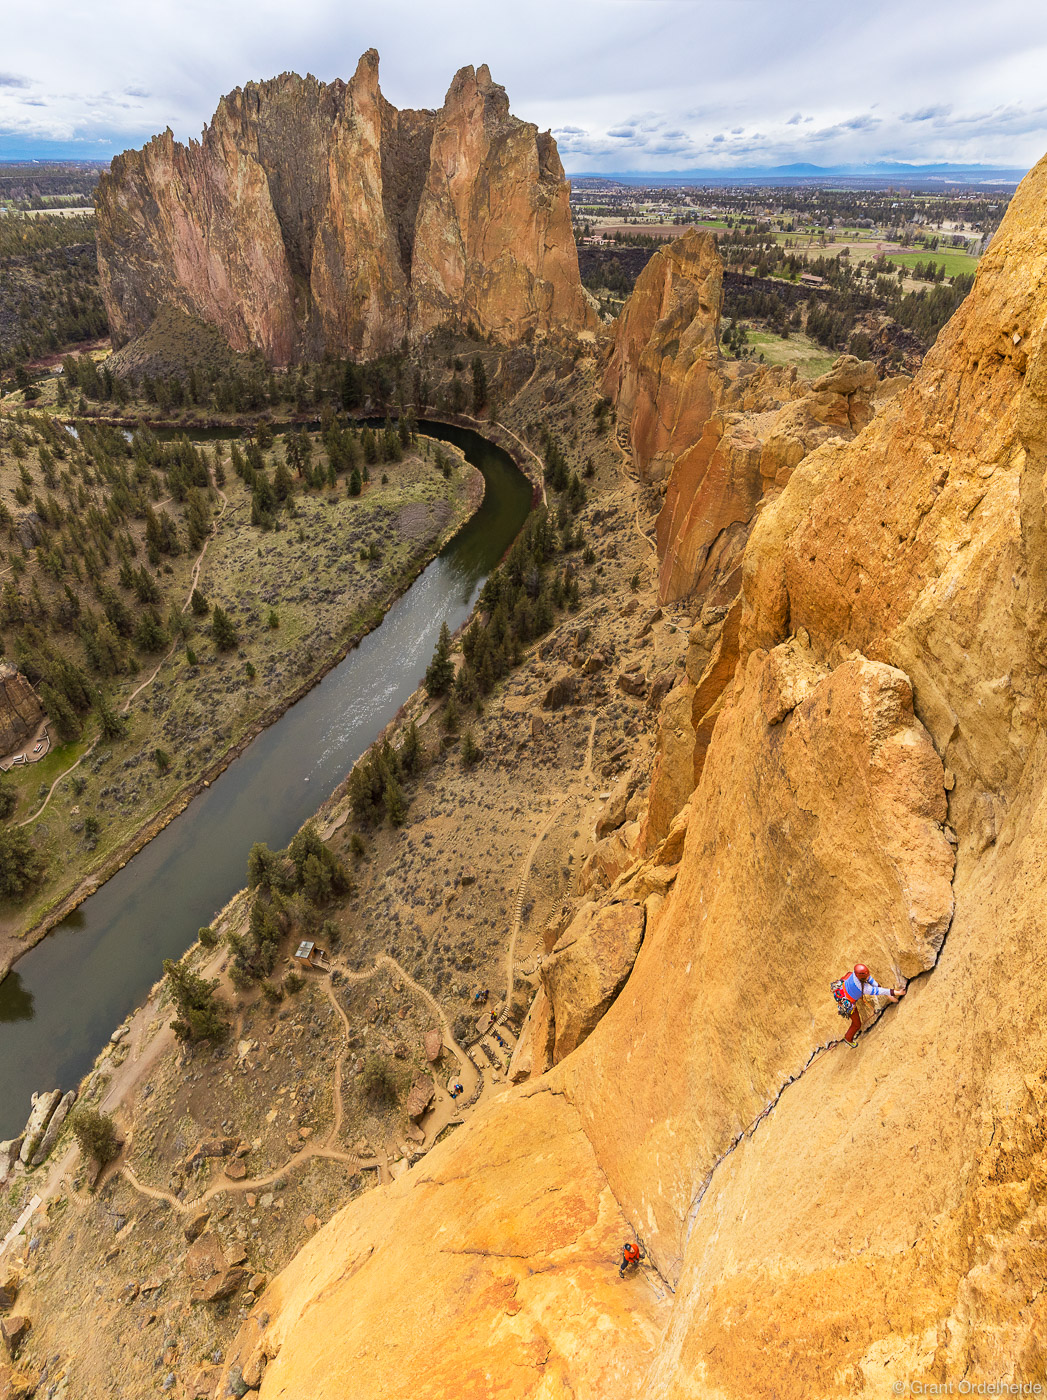 A climber making her way up the last pitch of Zion, a popular multipitch route at Oregon's Smith Rock State Park.